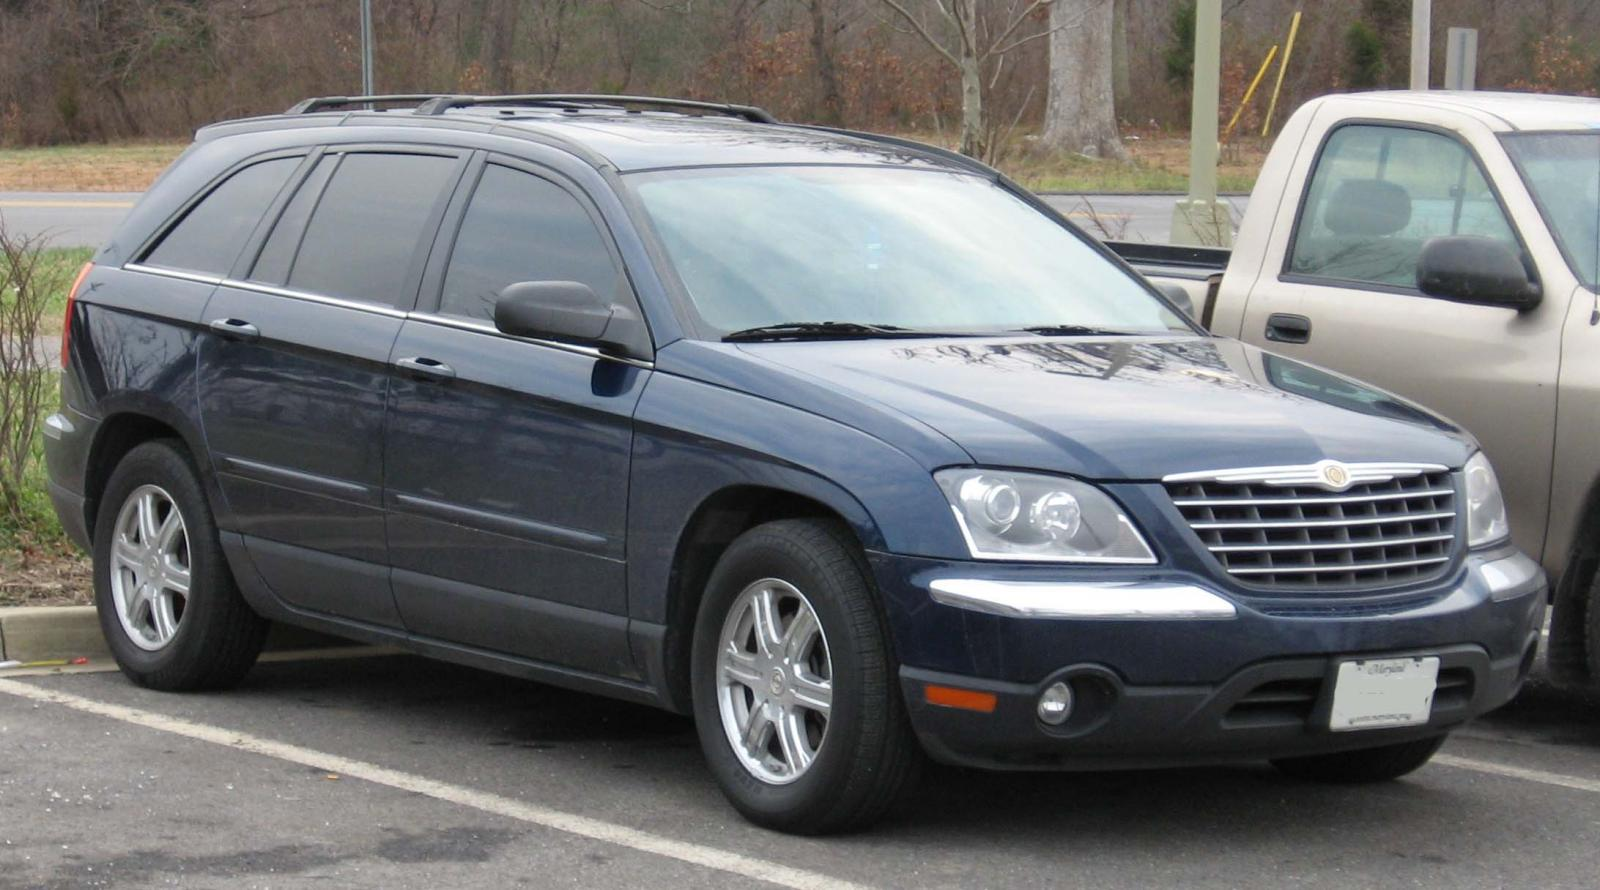 2007 chrysler pacifica information and photos zombiedrive. Black Bedroom Furniture Sets. Home Design Ideas